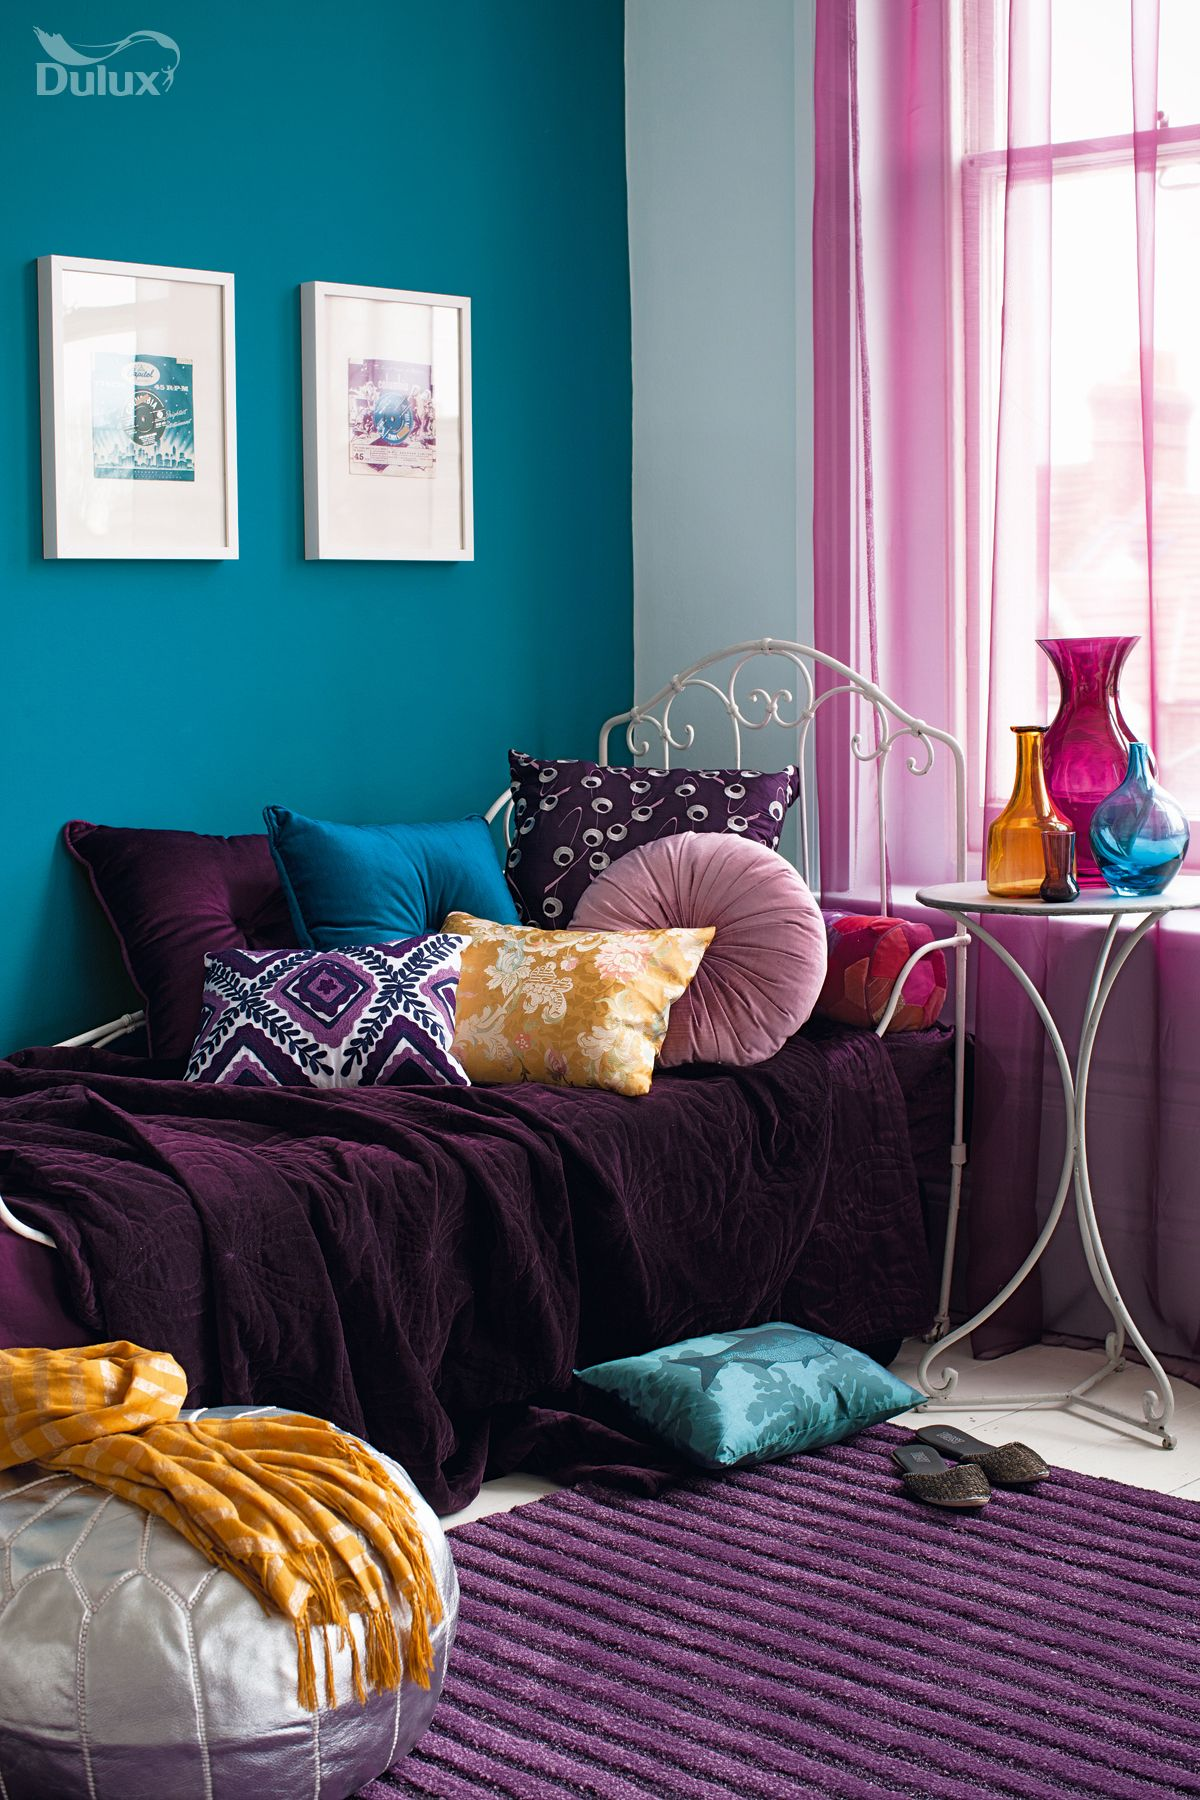 DIY Bedroom Ideas For Girls Or Boys - Furniture | Bedroom | Purple ...